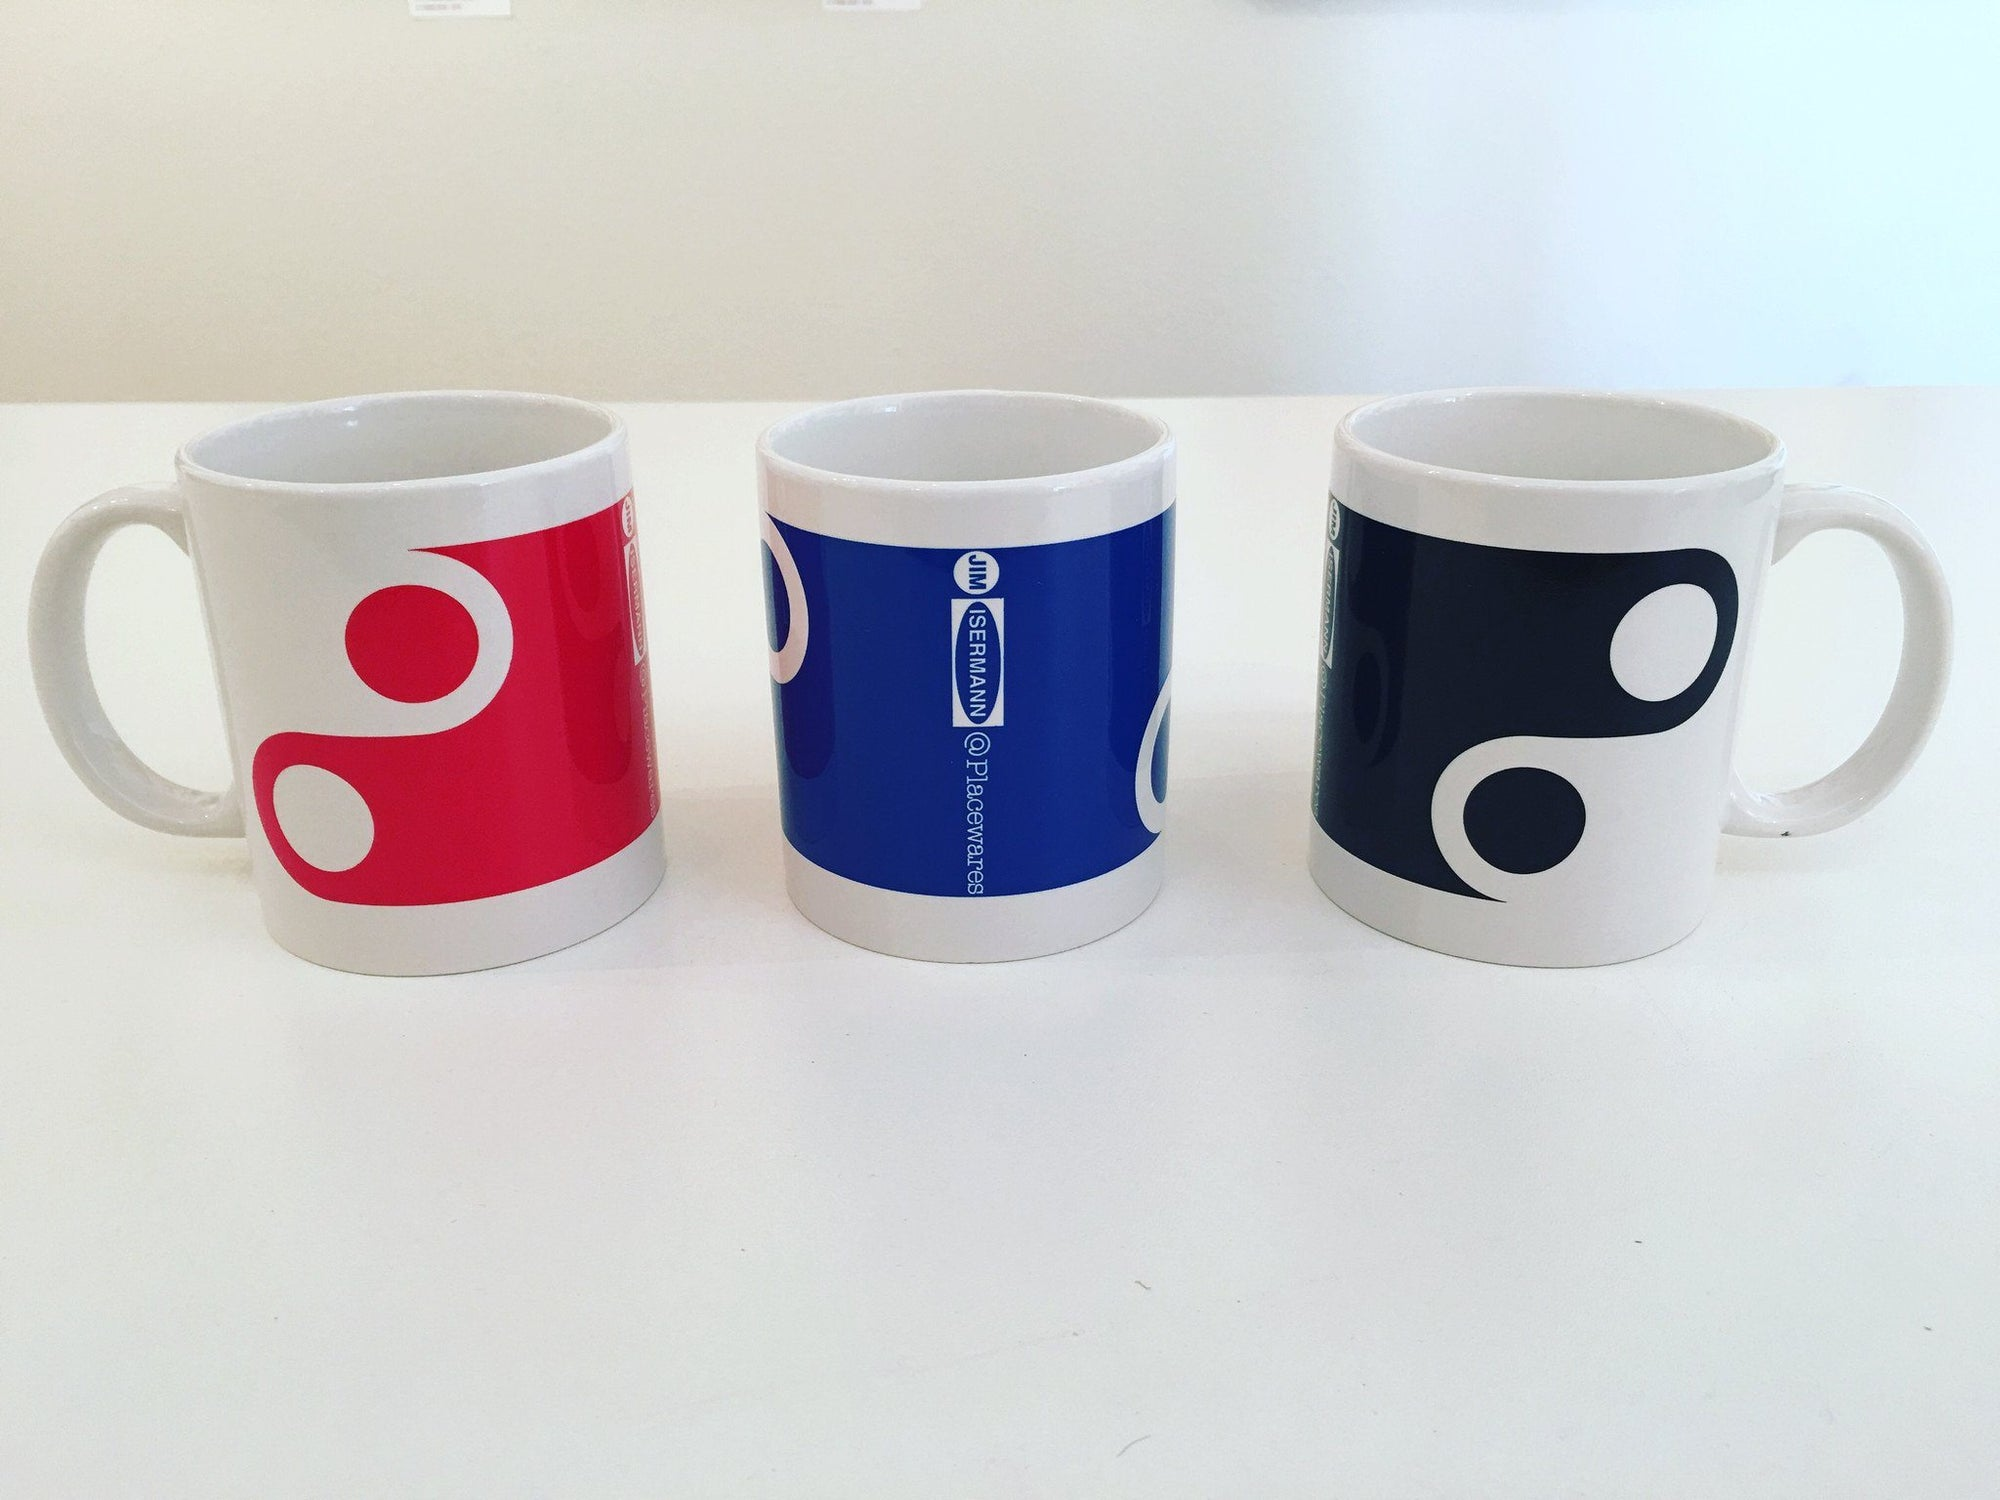 Jim Isermann @ Placewares, Mug, Blue, Pattern 5 - Jim Isermann @ Placewares, - Placewares